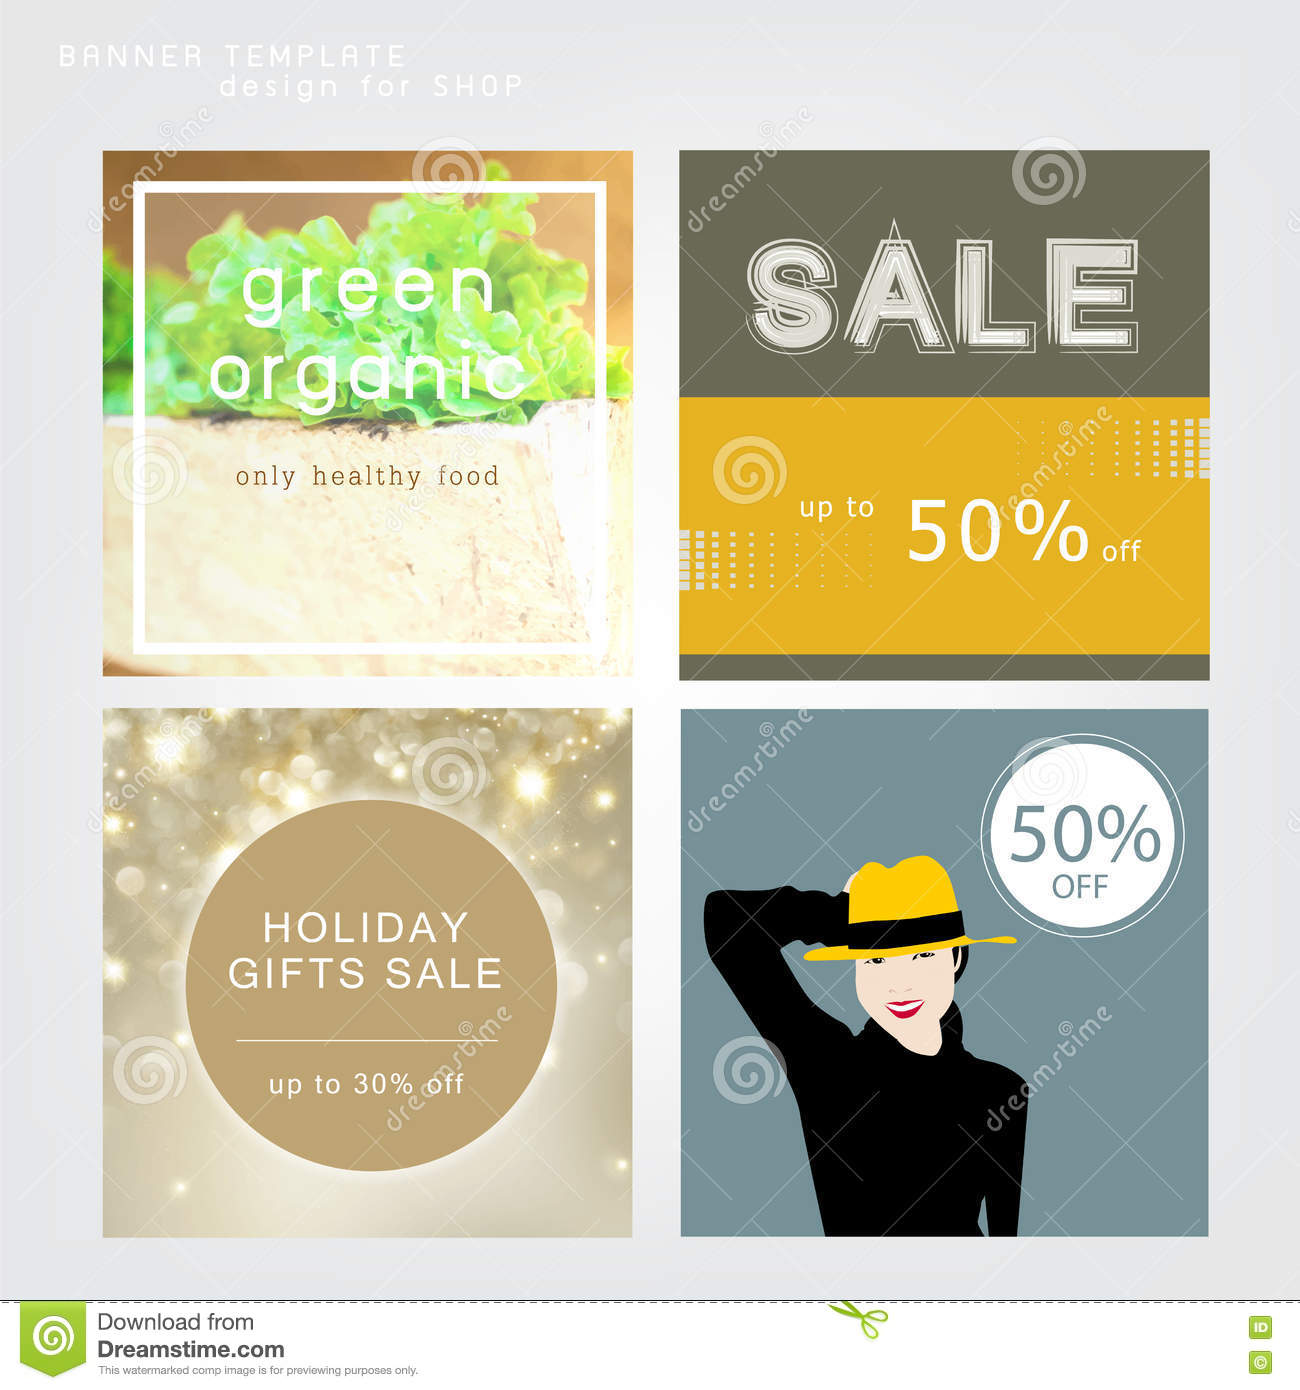 Banner template for shop sale season stock vector image Architecture firm for sale